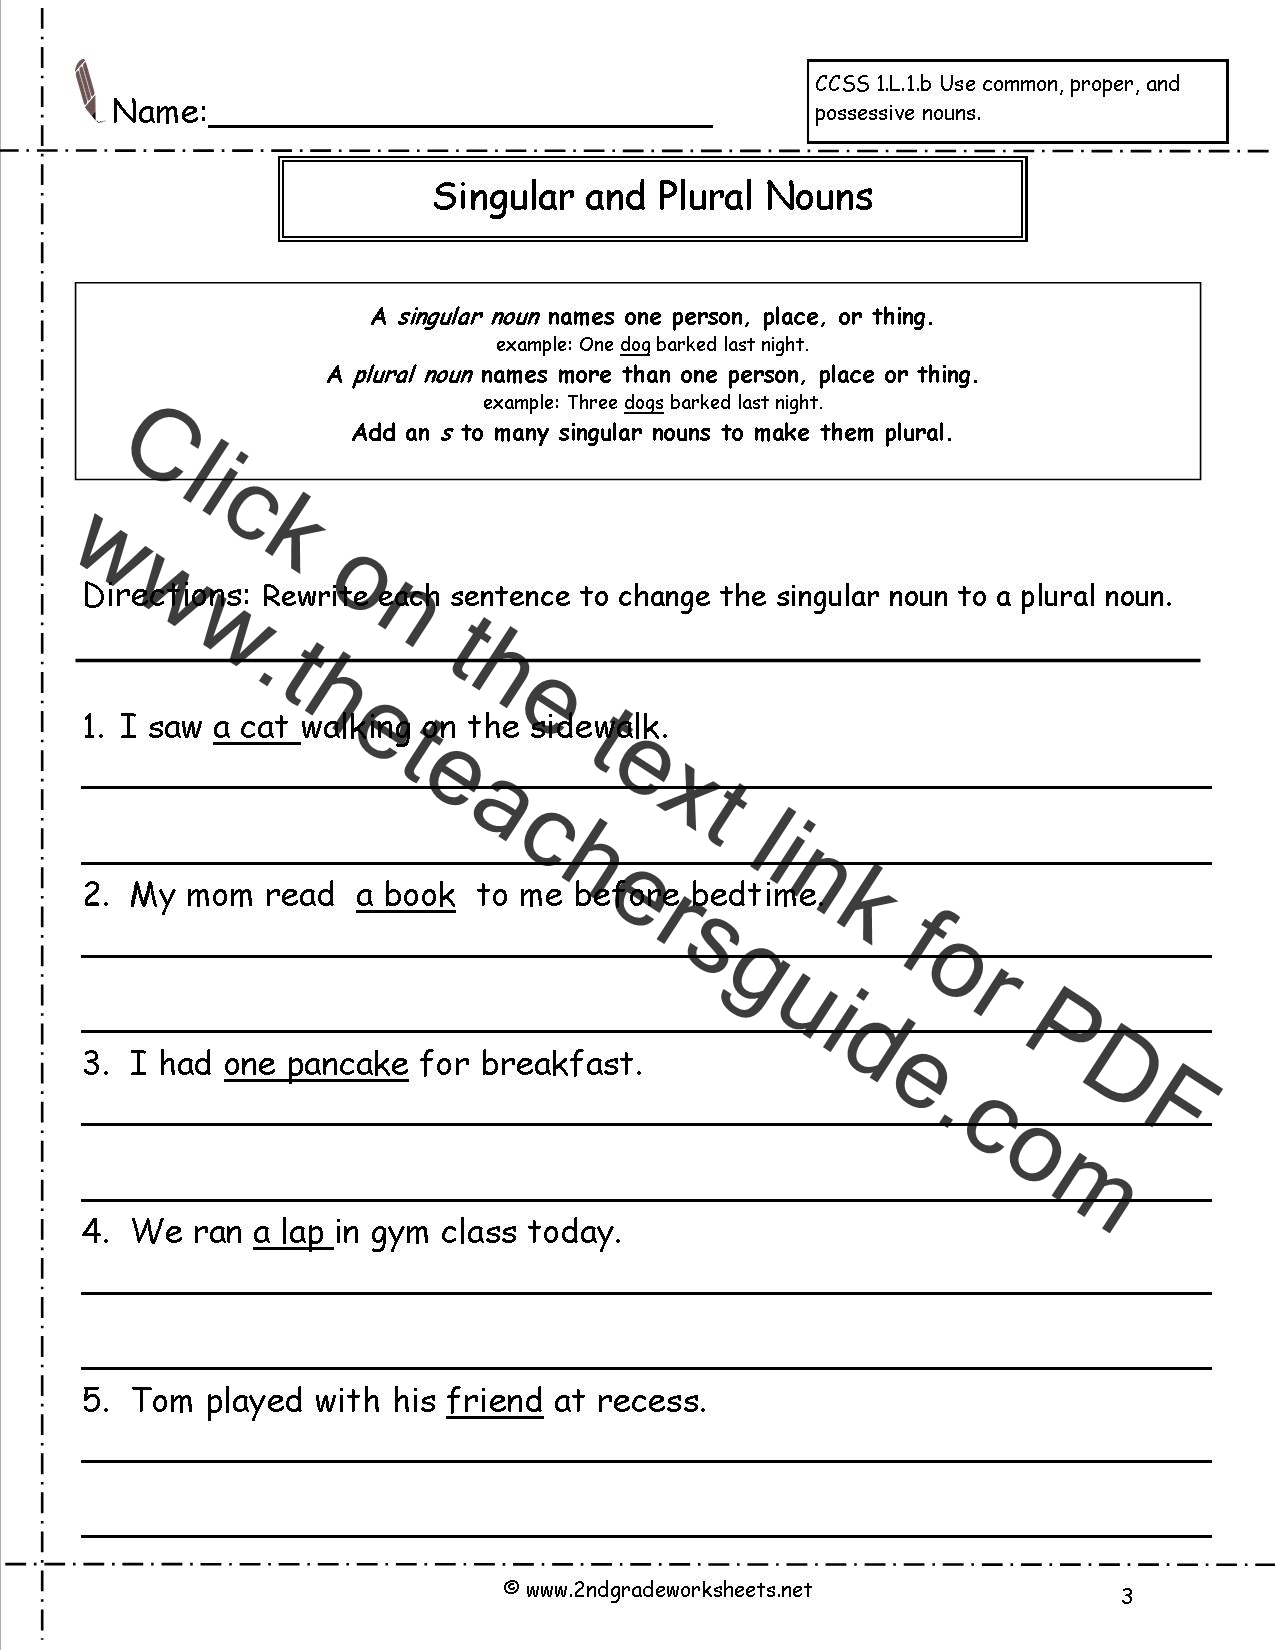 Worksheets Plural Nouns Worksheets singular and plural nouns worksheets worksheet